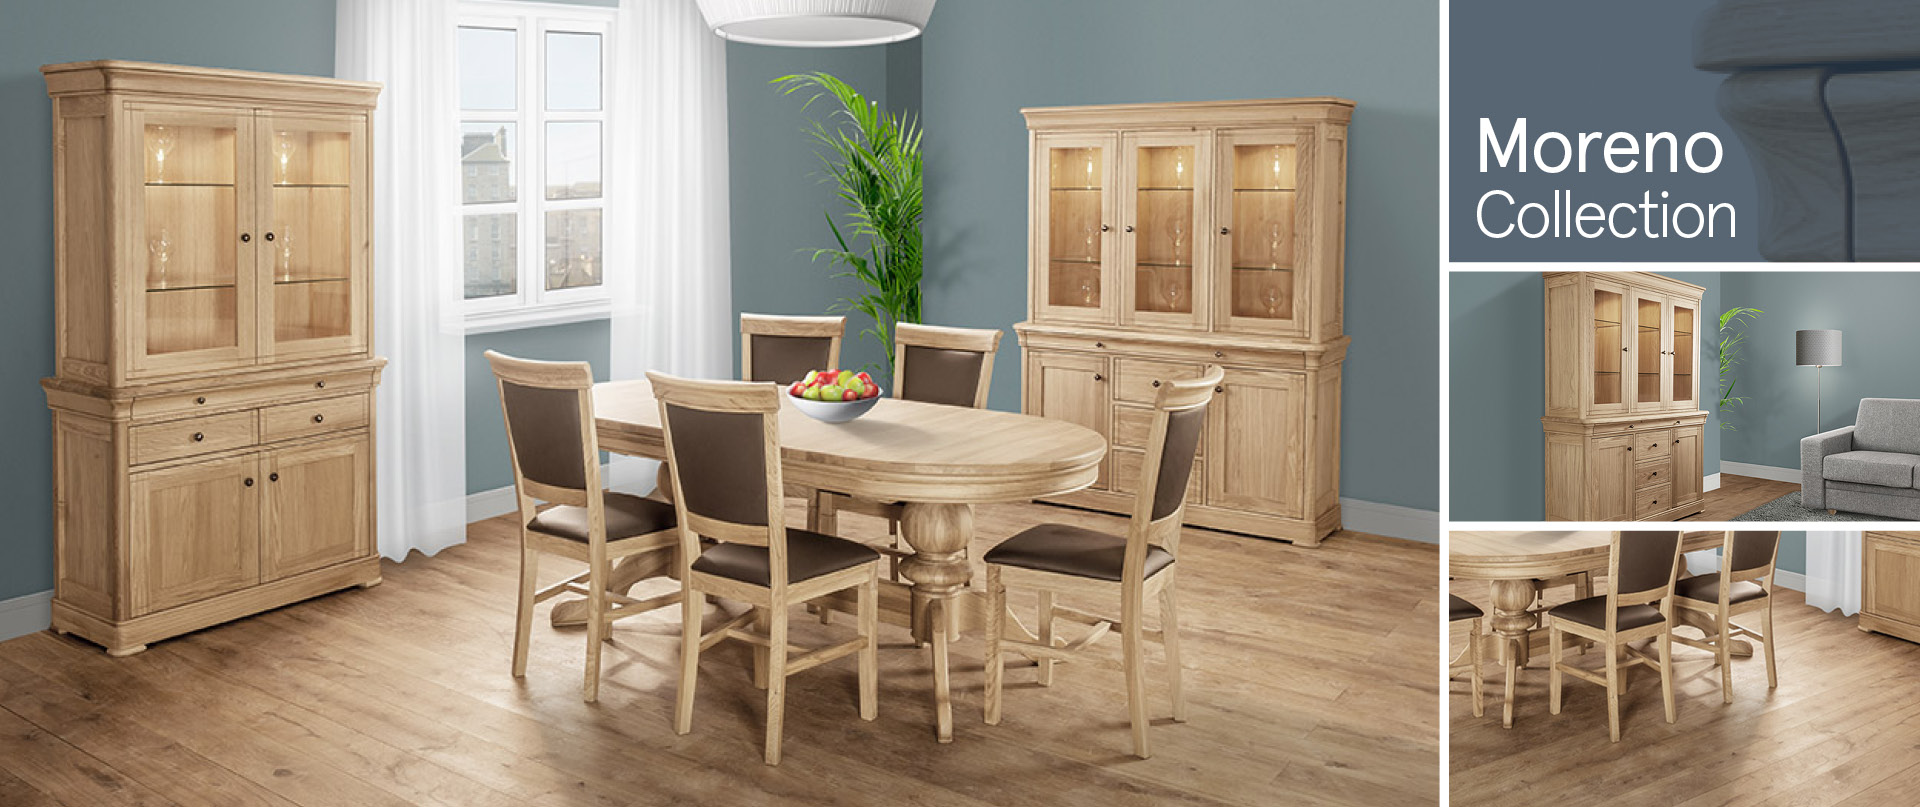 Moreno Dining Ranges